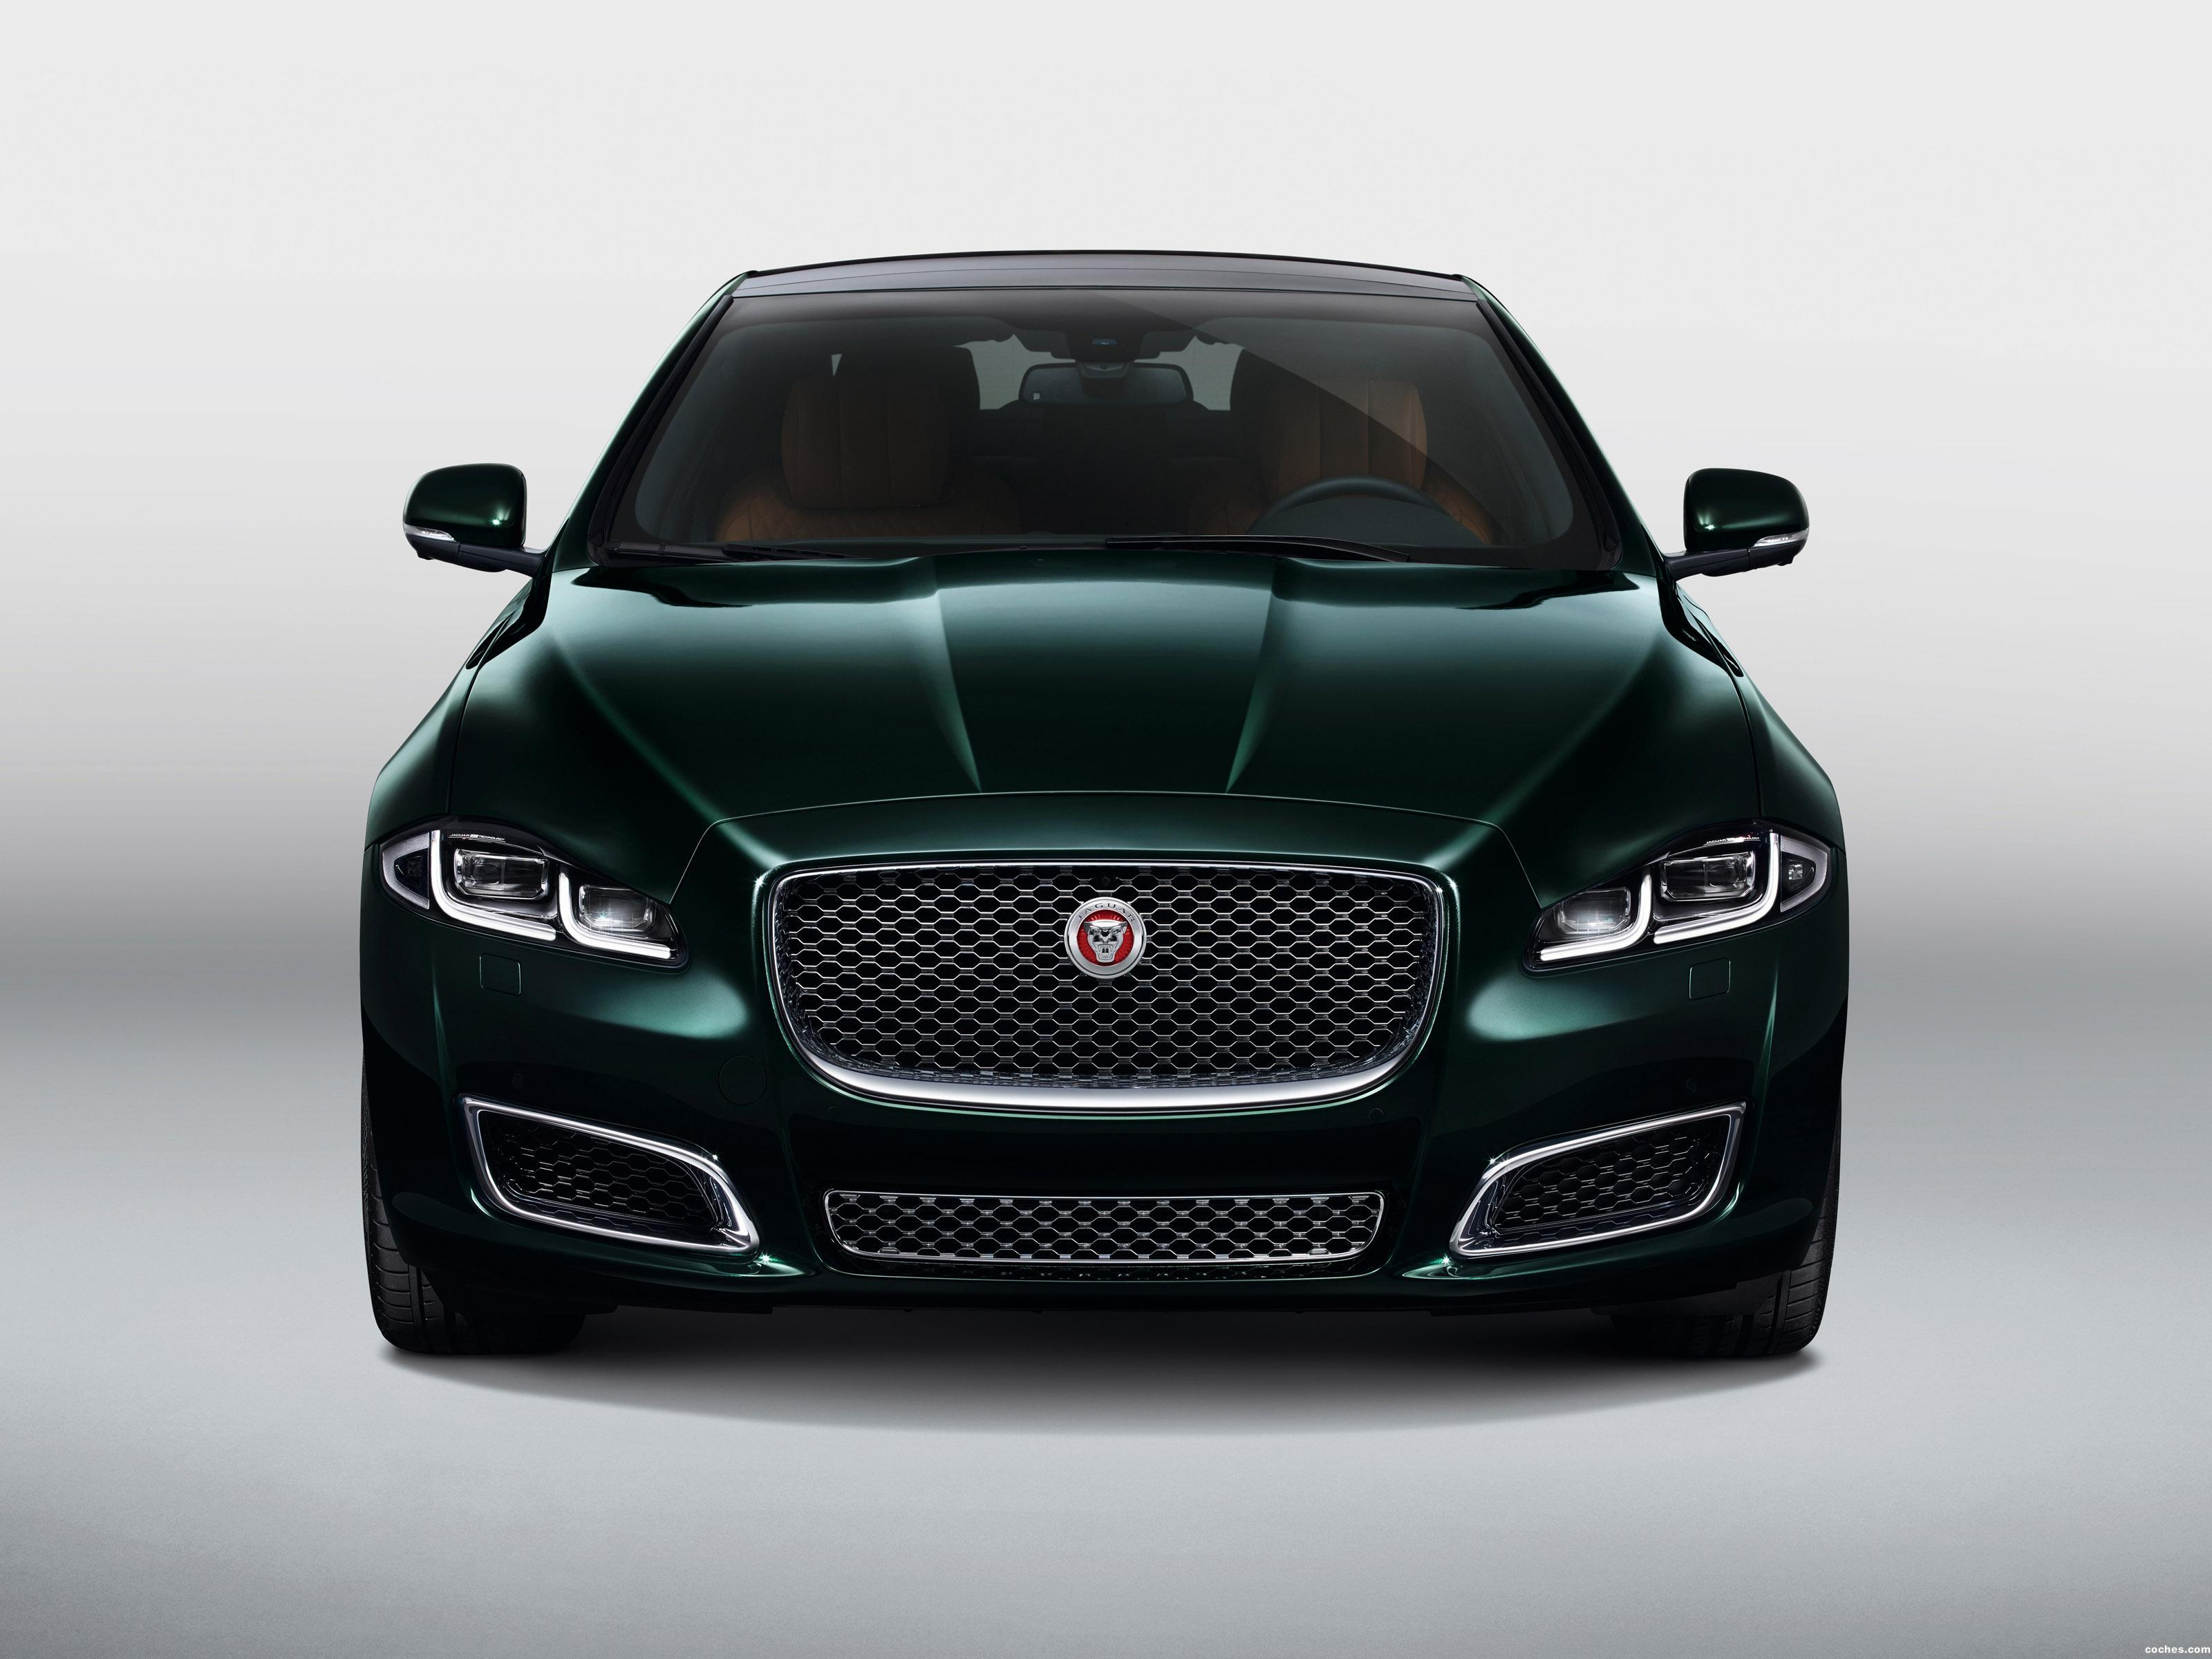 jaguar_xj-l-diamond-x351-2016_r4.jpg